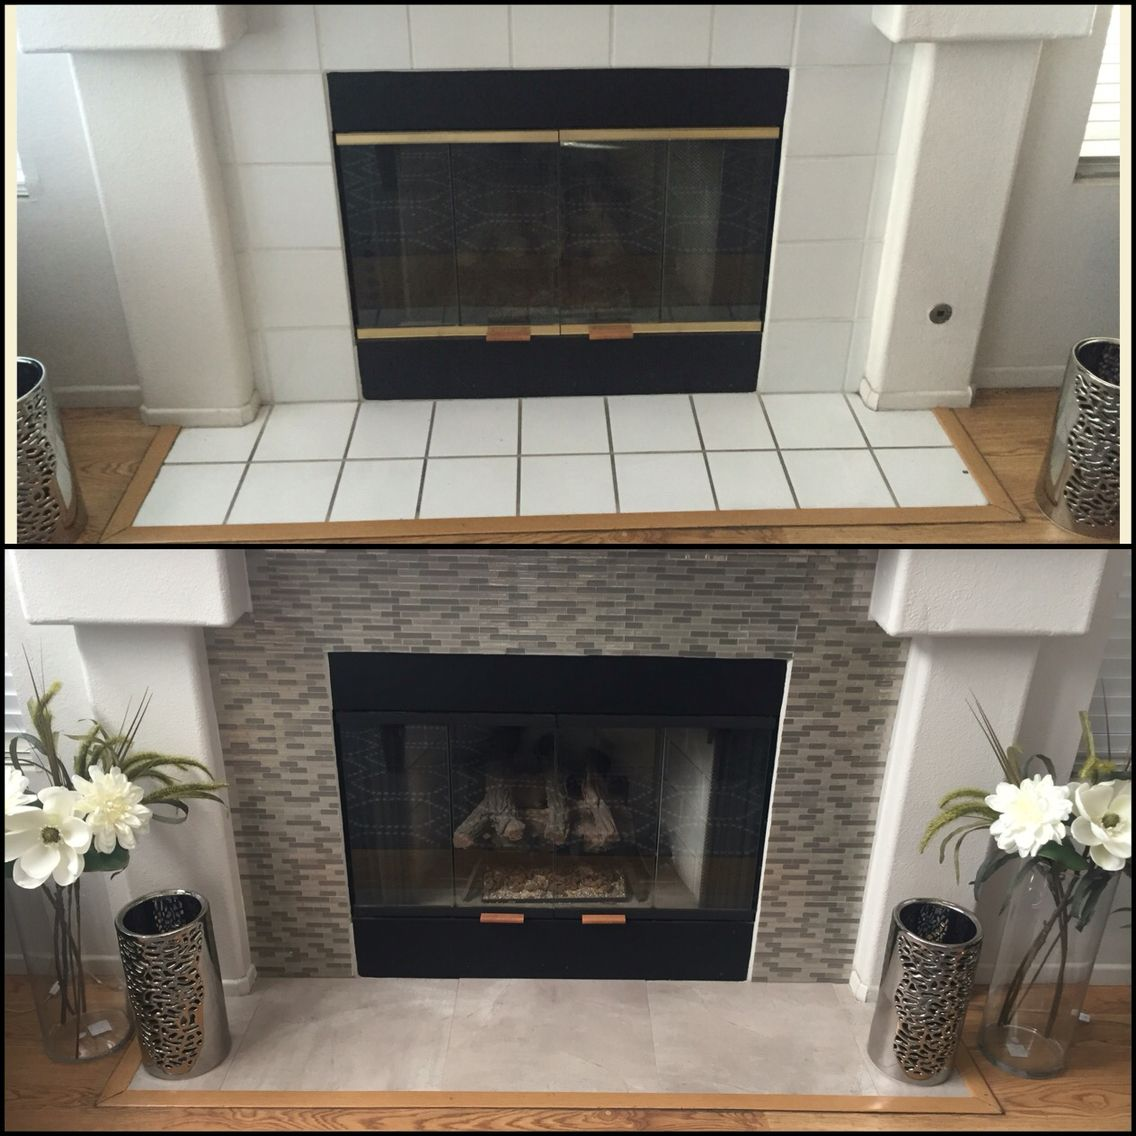 DIY fireplace makeover under $100 Smart Tiles in Muretto Beige ...